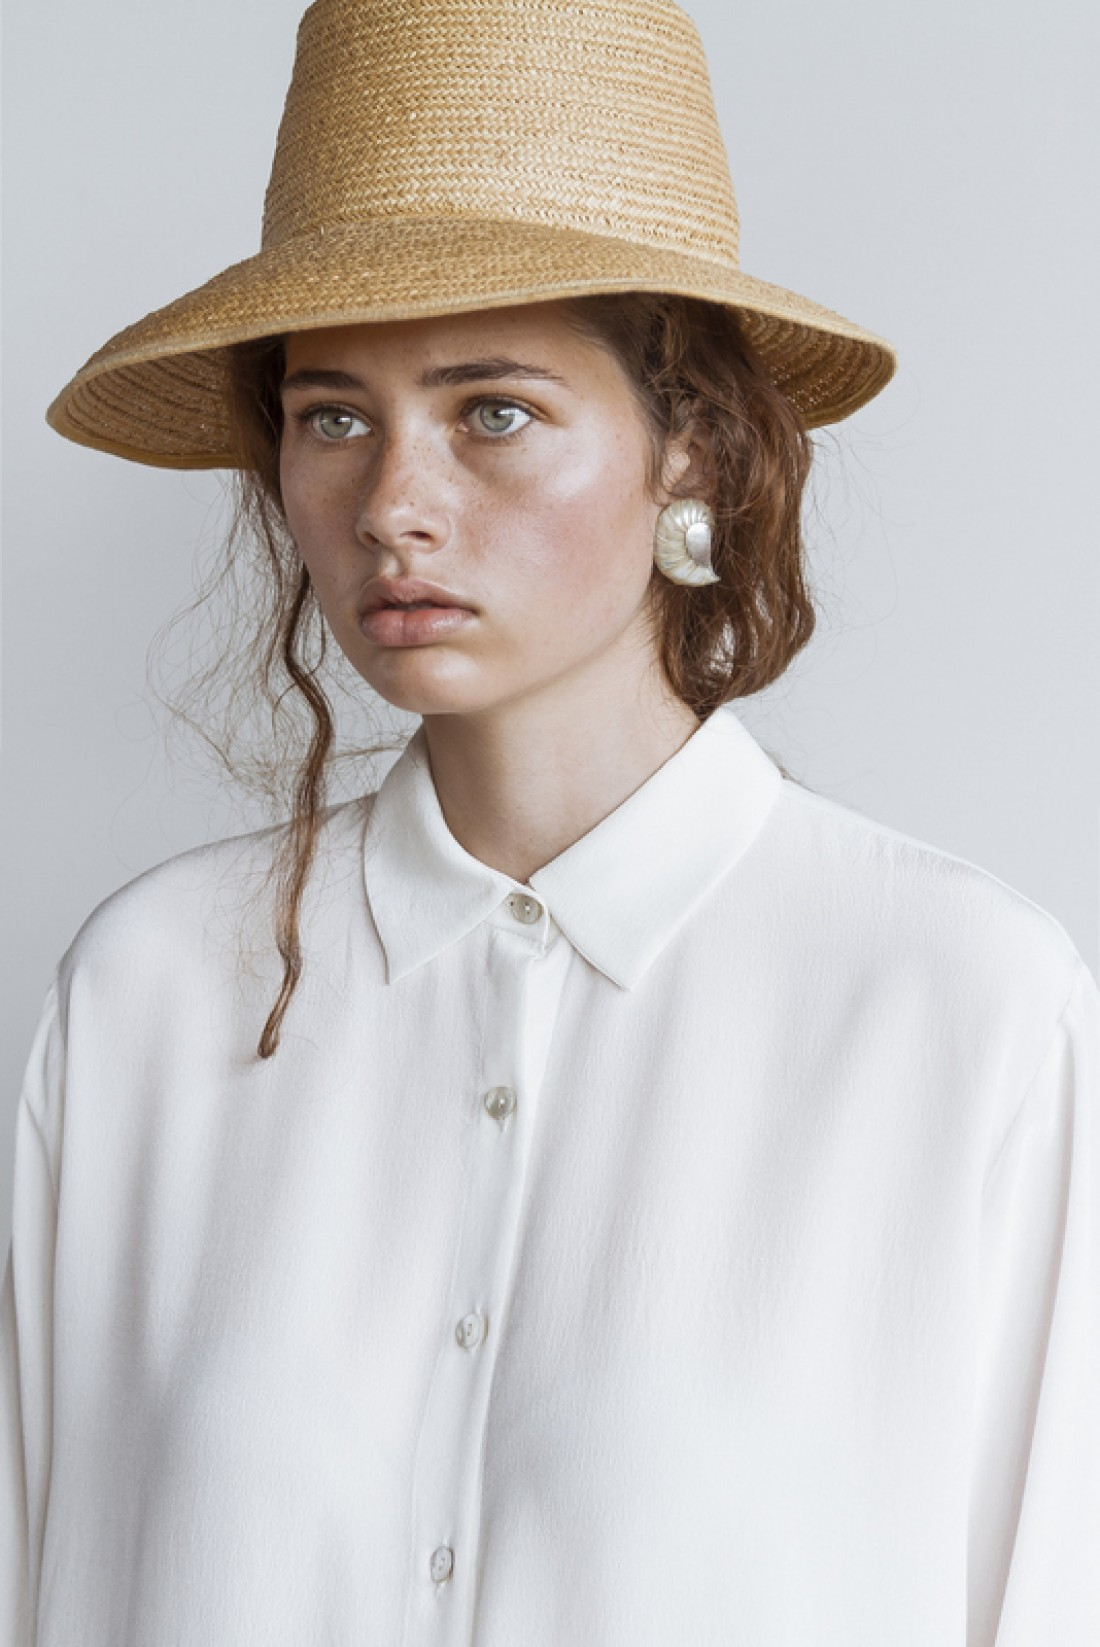 Ruby photographed by Georgia Hembrow for Wixxii